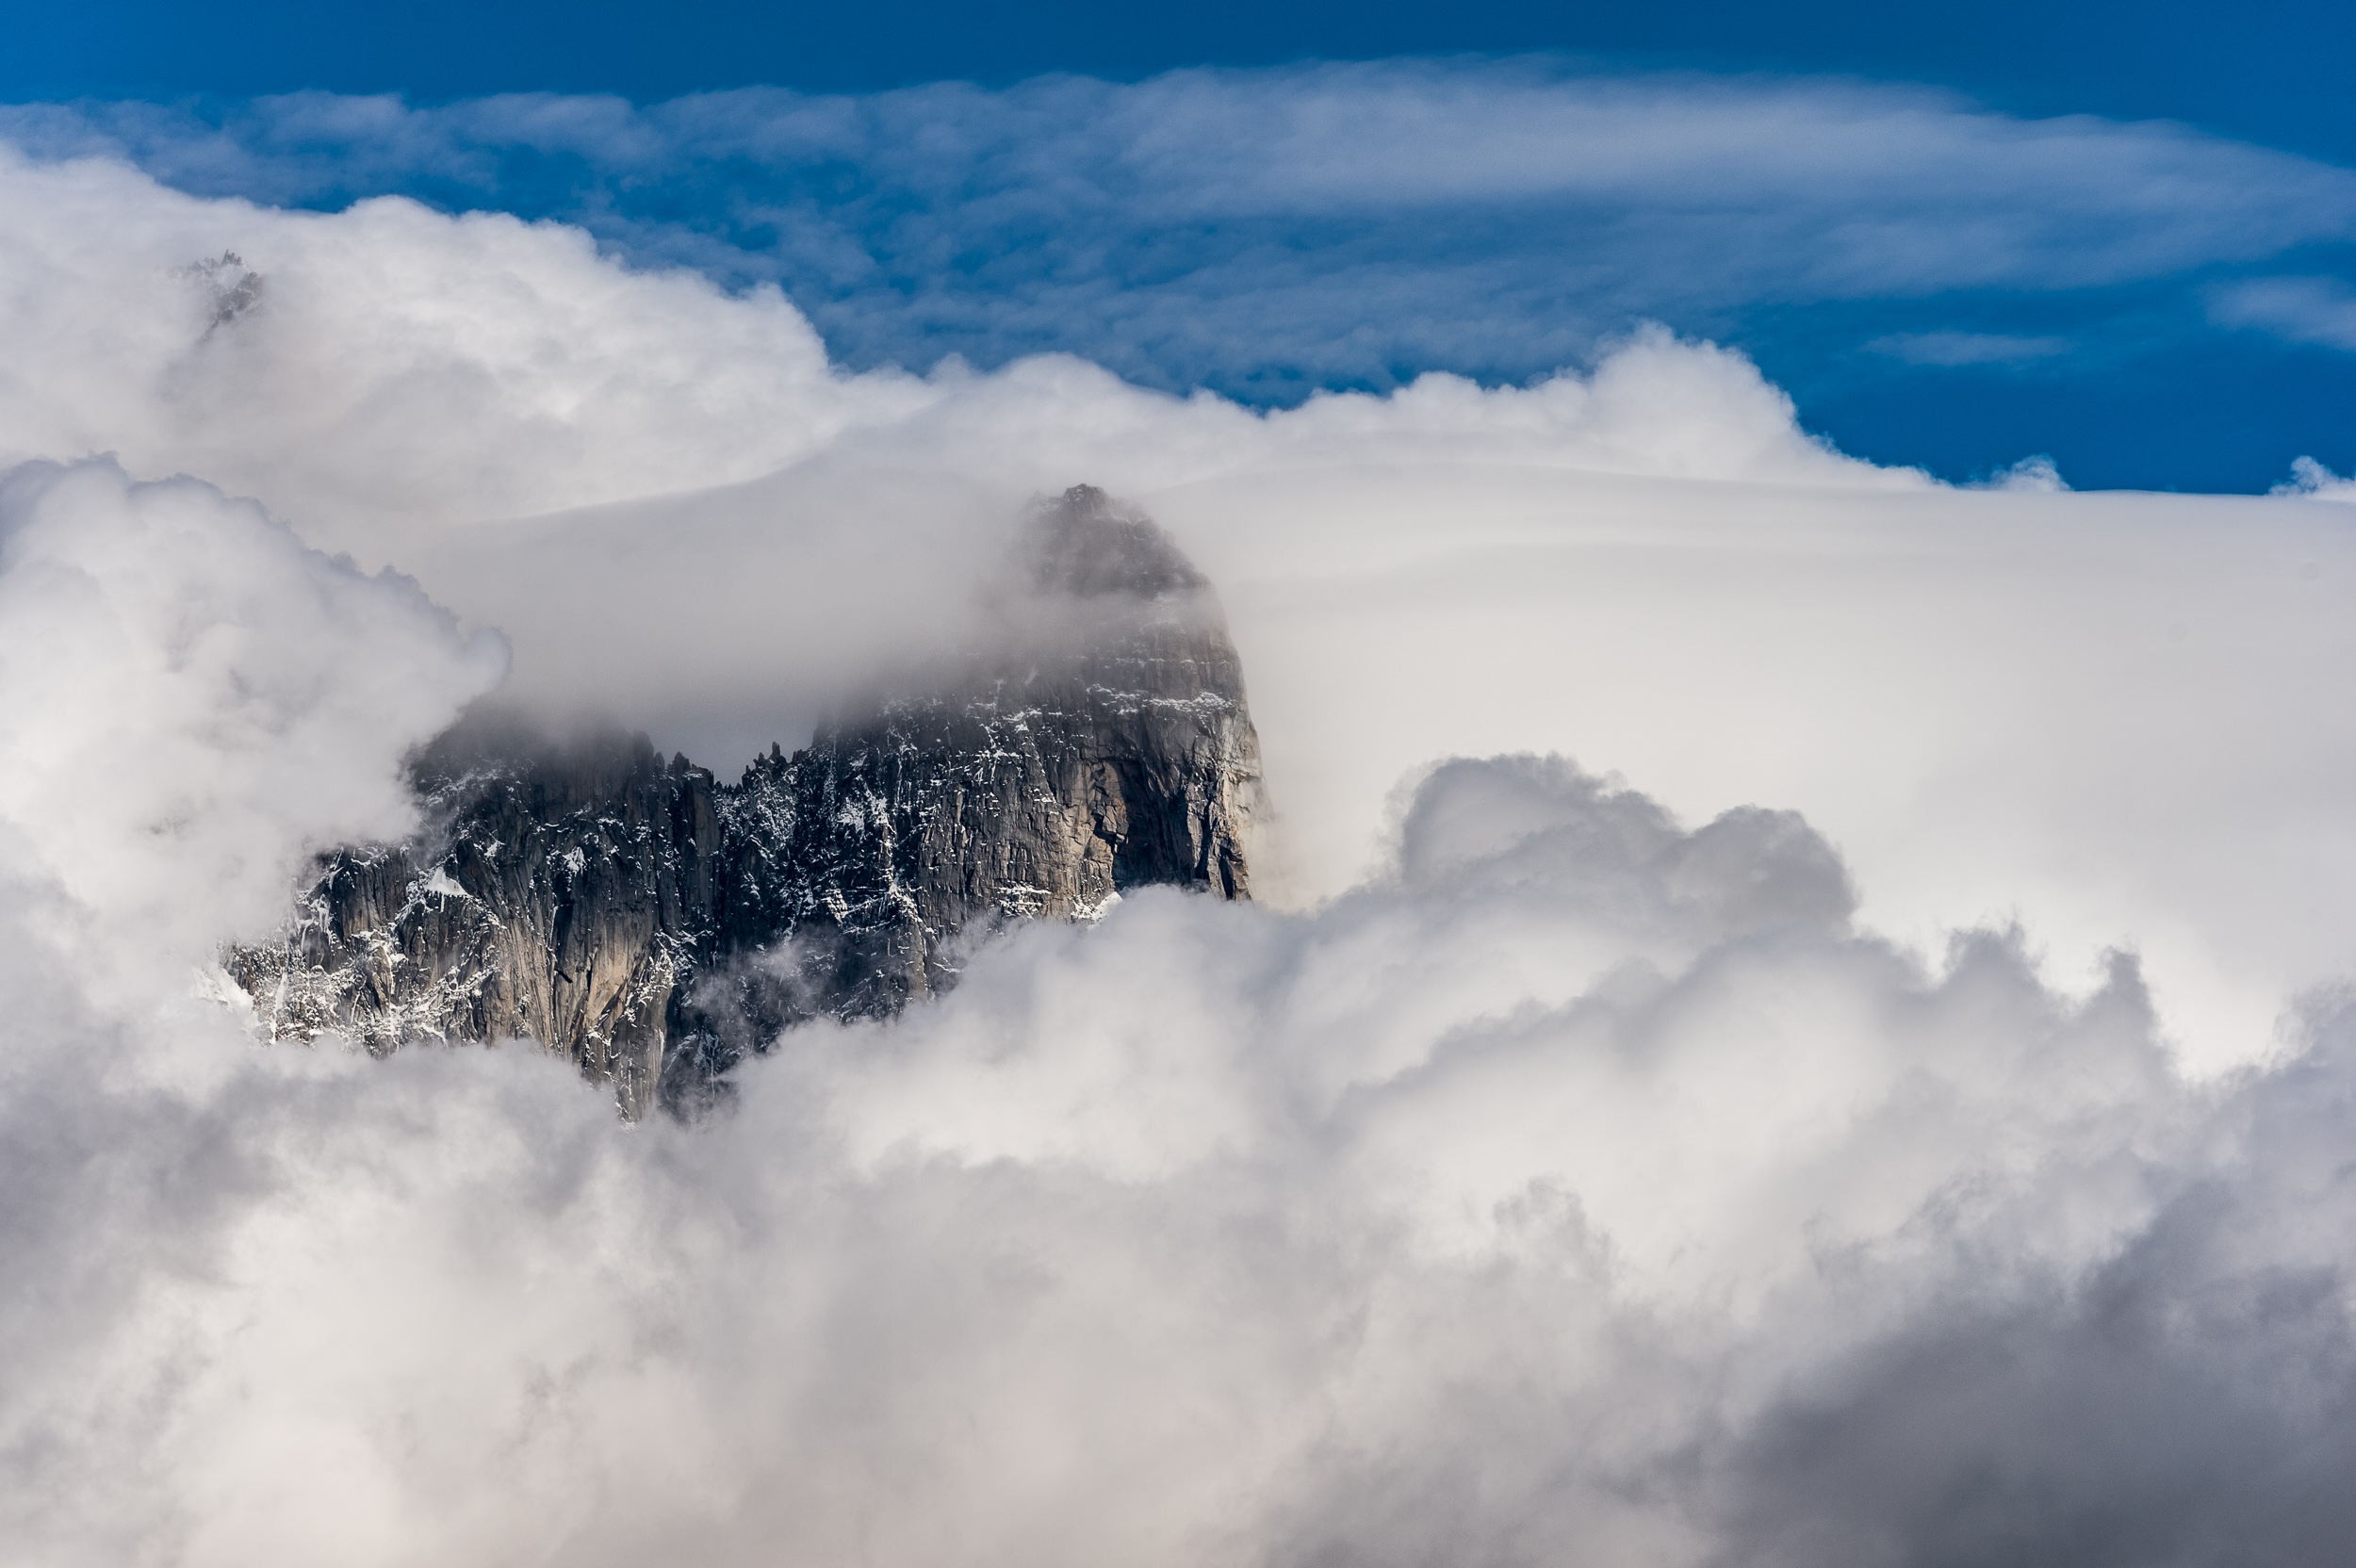 The iconic peak of Aiguille du Dru peeks out of the clouds in the Chamonix region of France.